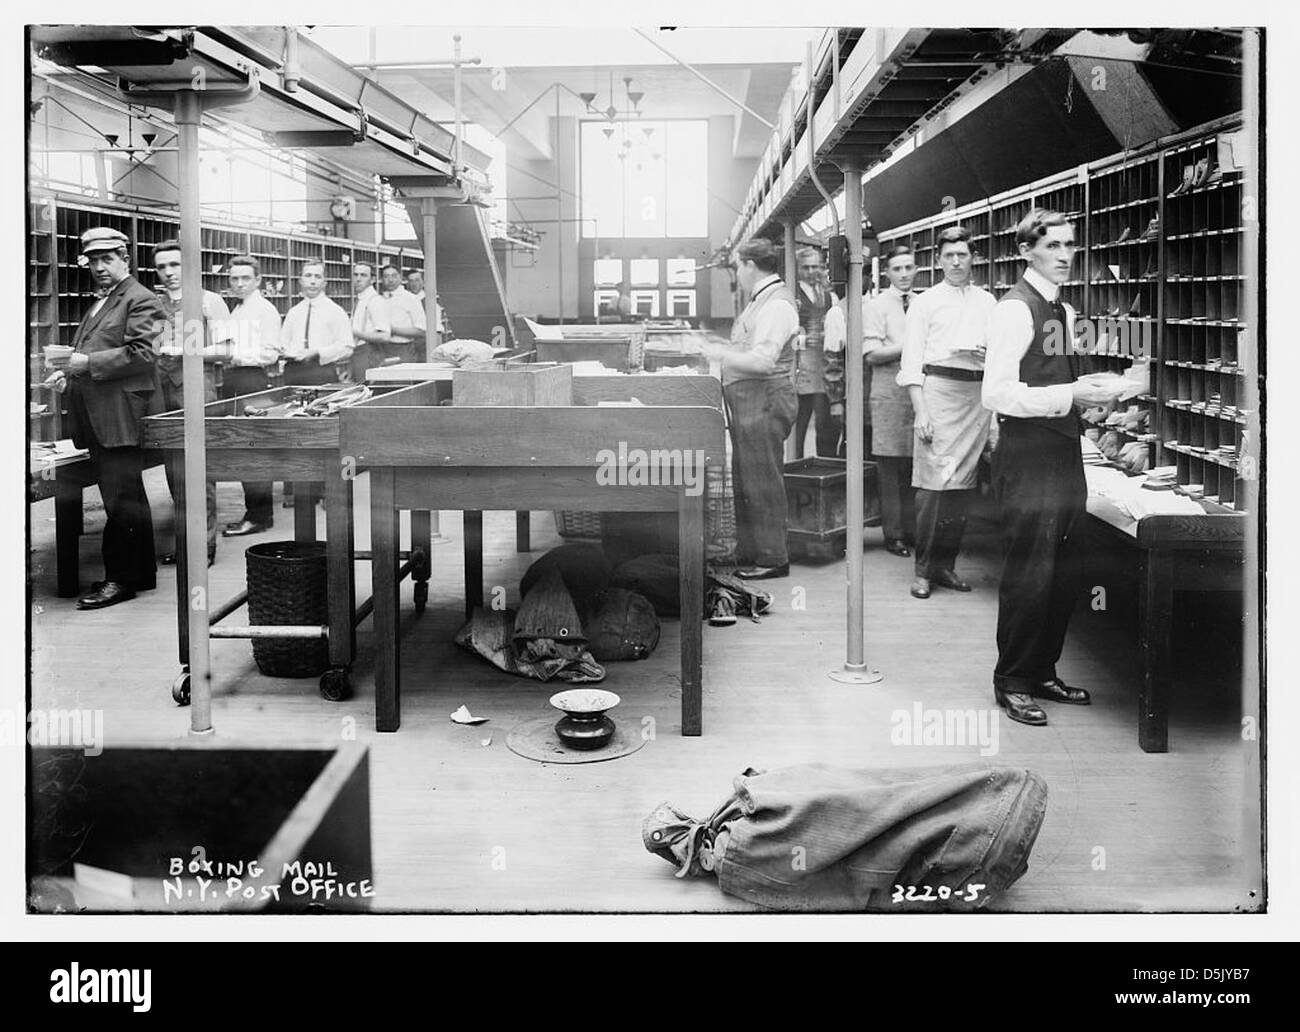 Boxing mail -- N.Y. Post Office (LOC) - Stock Image